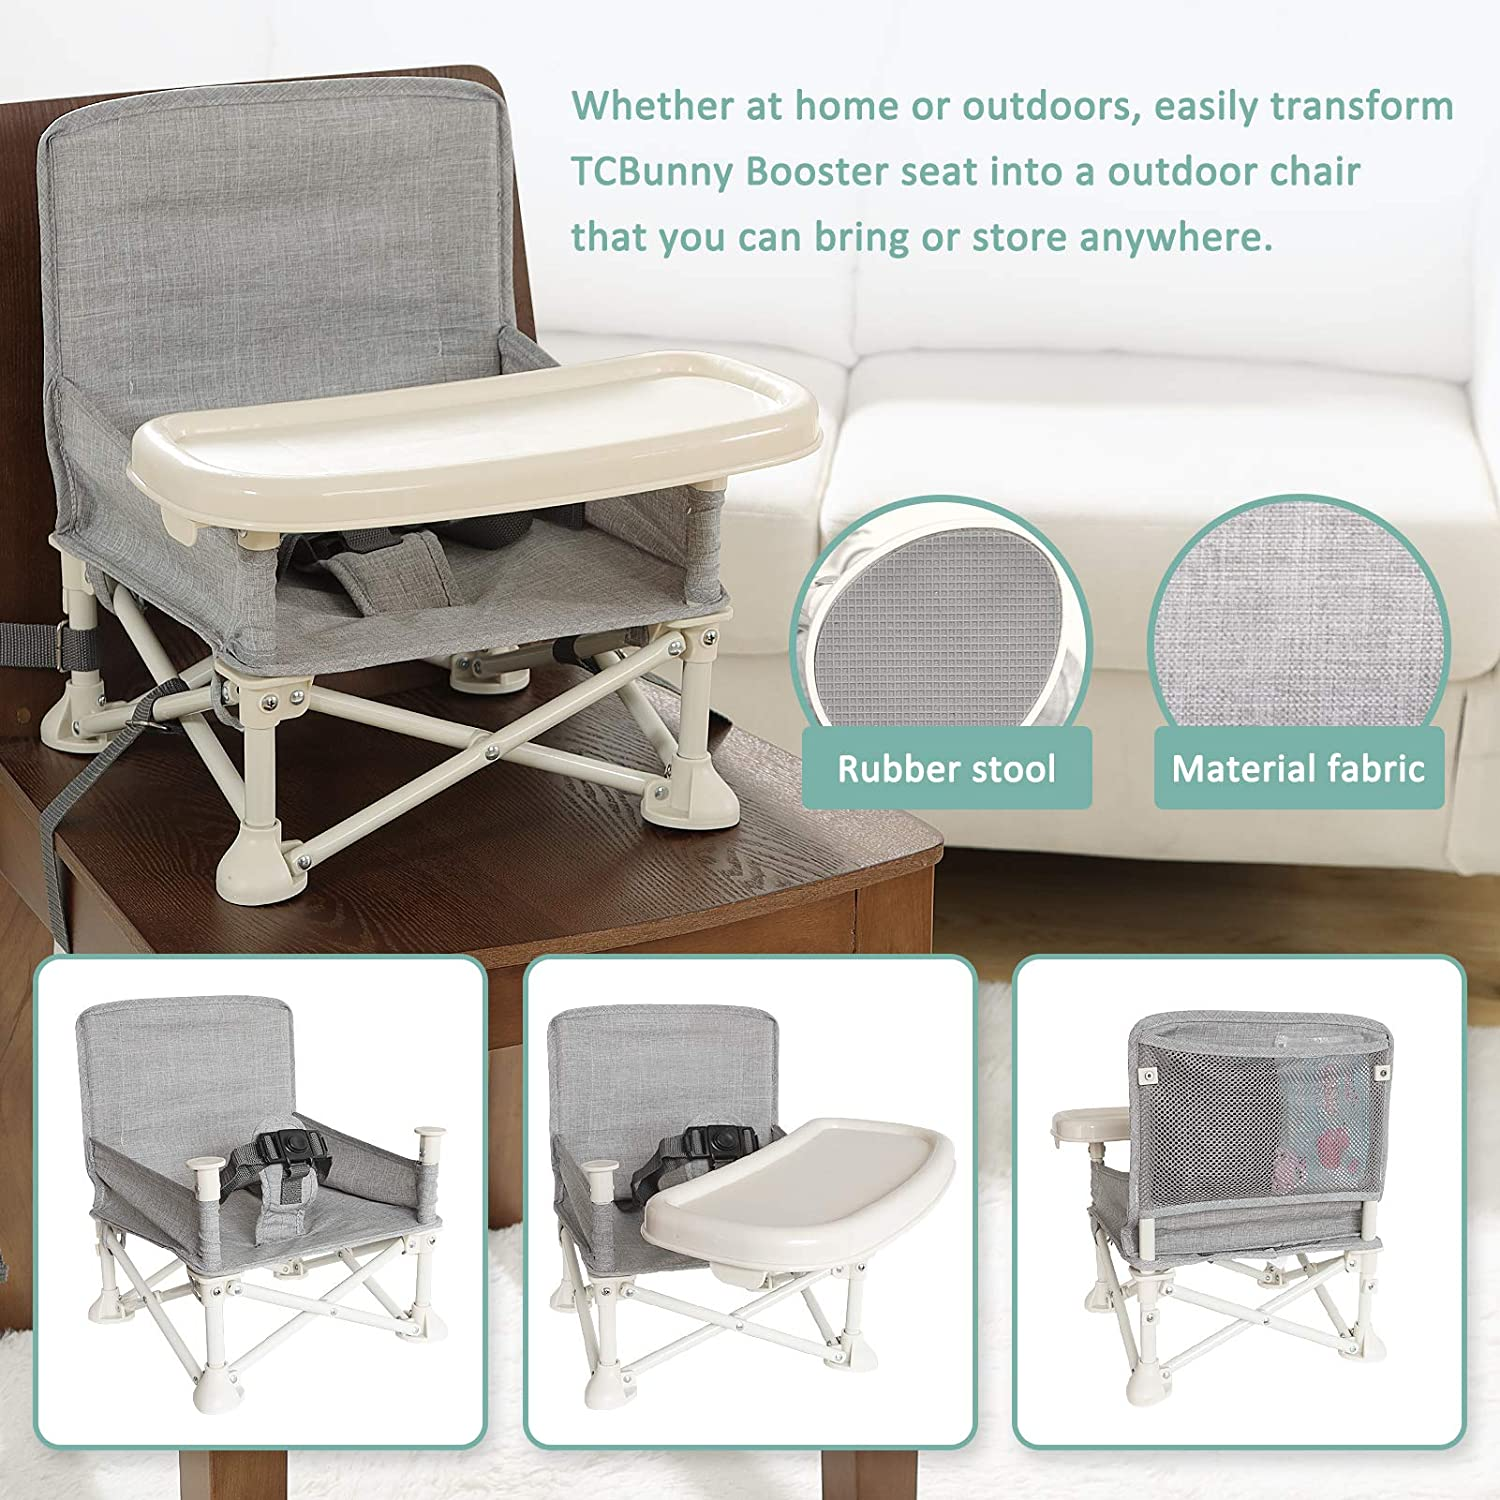 Compact Folding Portable High Chair for Baby Dining Grey TCBunny Travel Booster Seat with Removable Tray